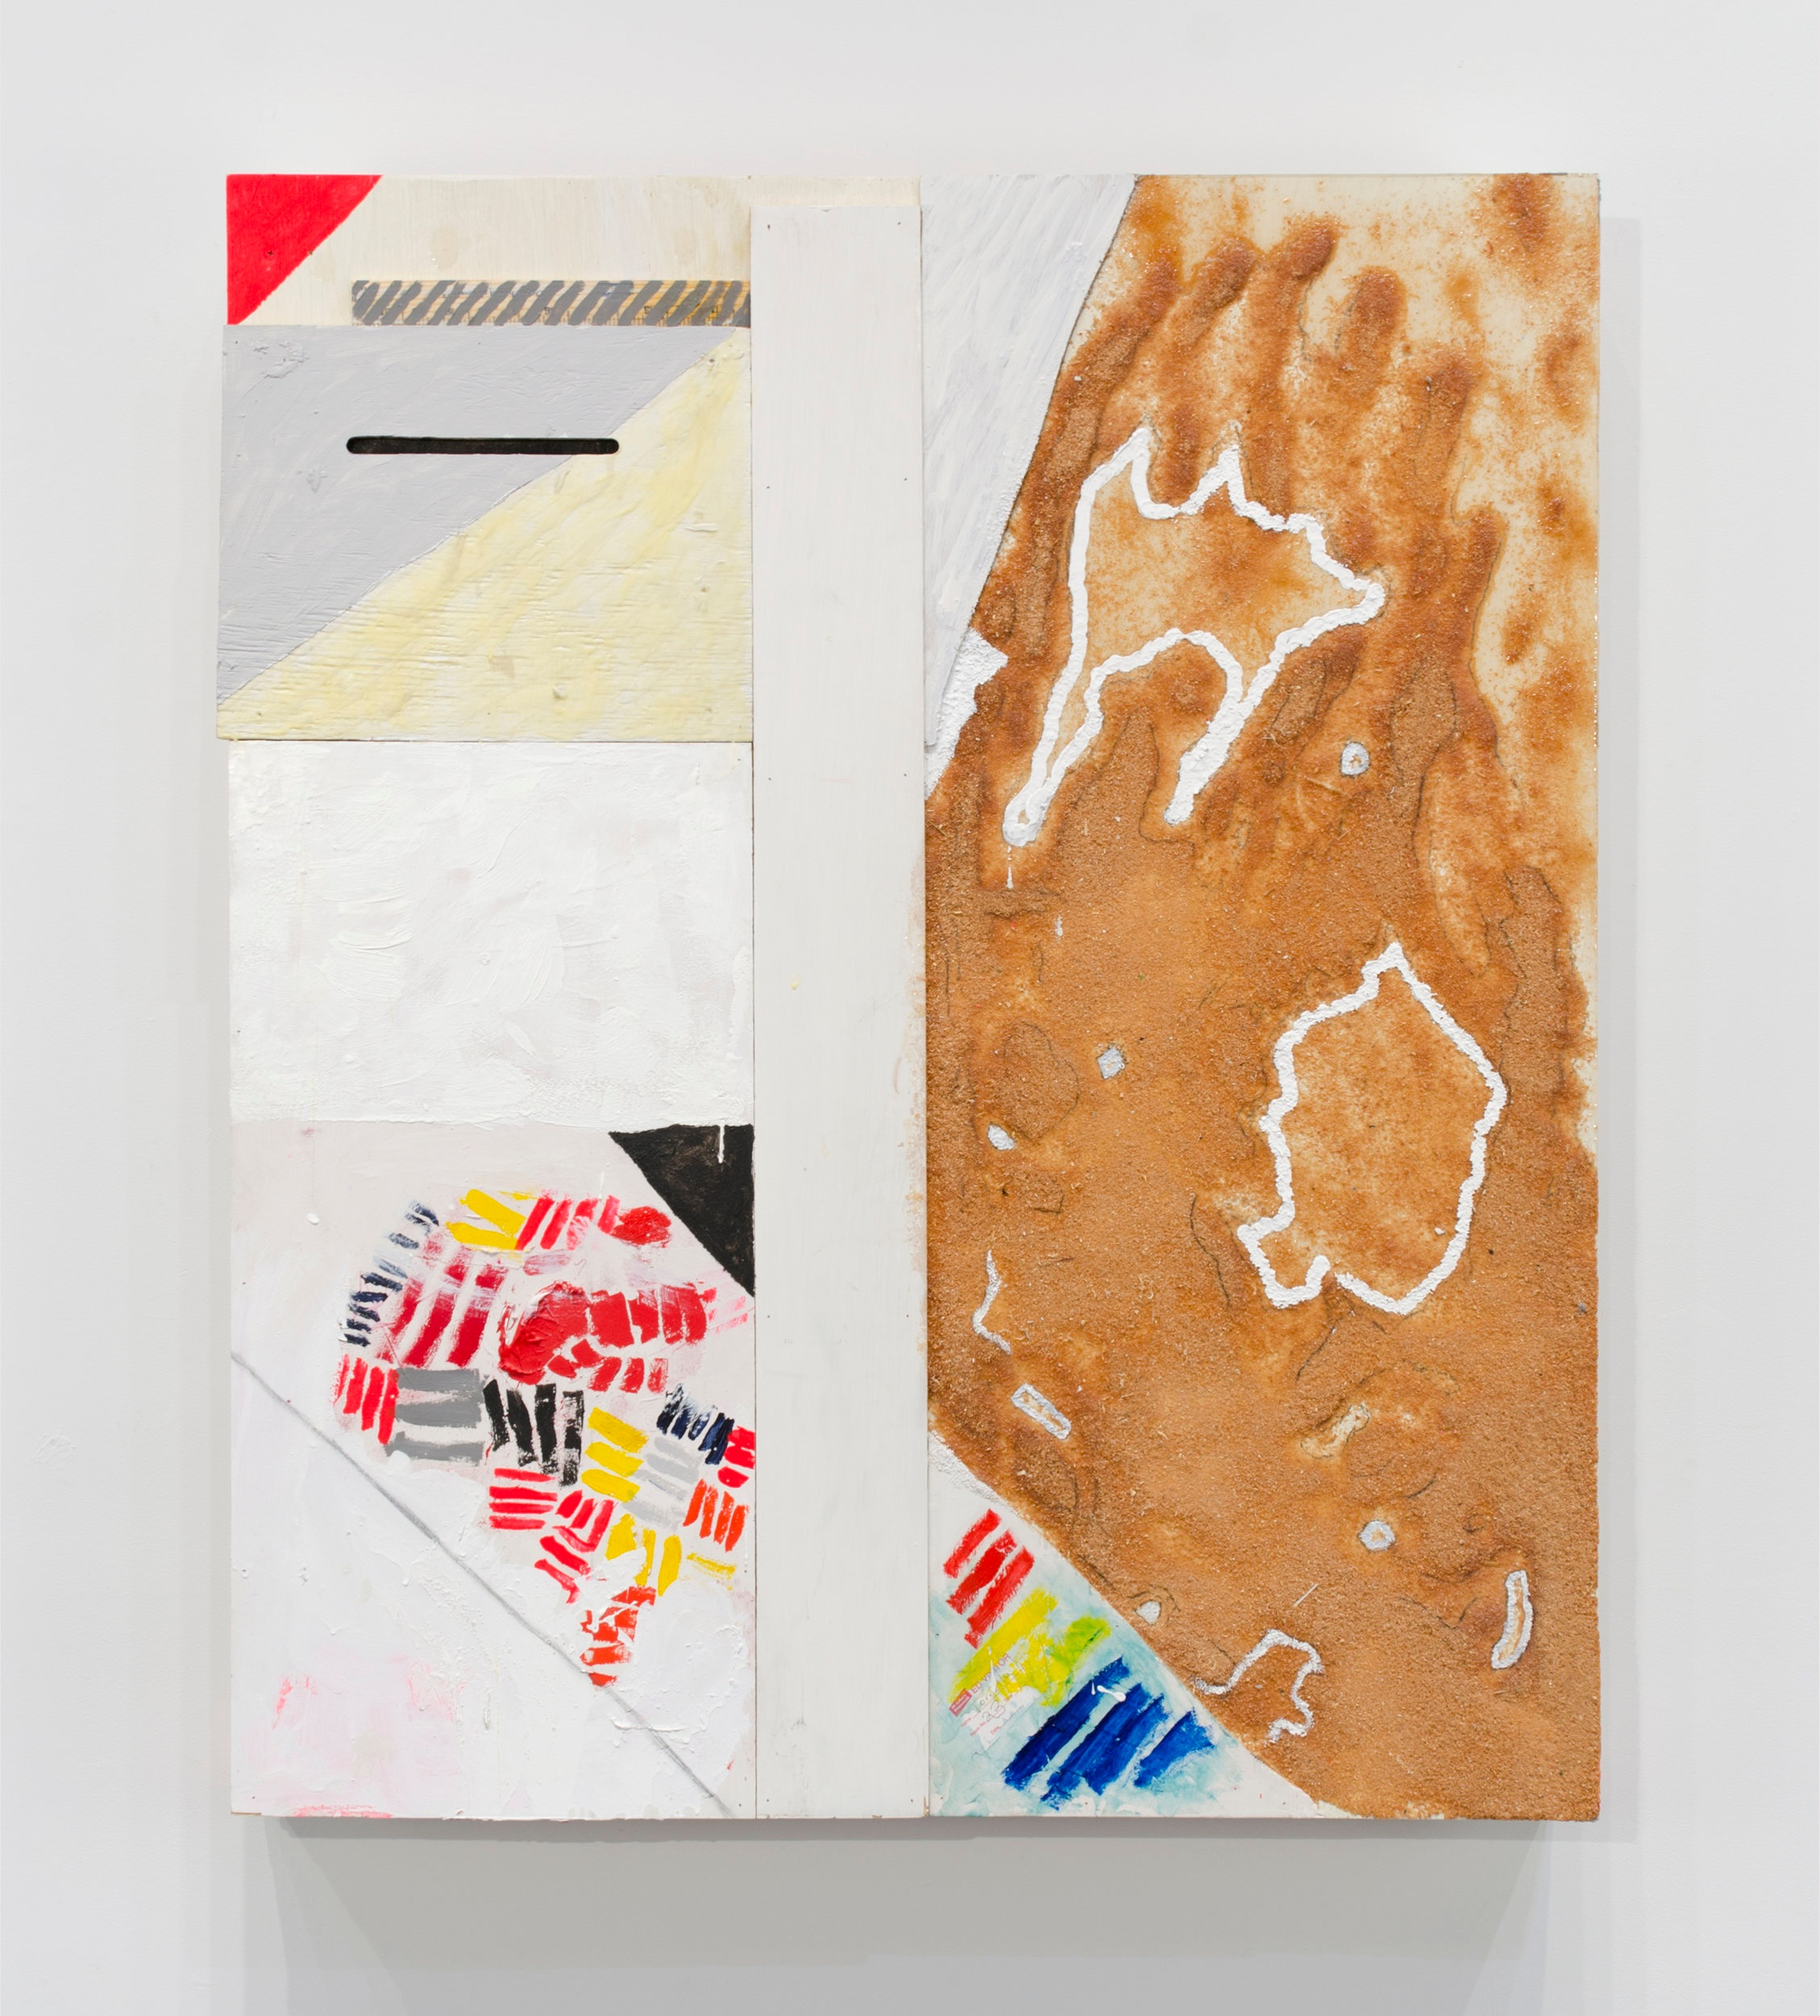 White Street Sandbox , 2013  Encaustic, acrylic, enamel, sawdust, epoxy, and shellac on wood  49 1/2 x 41 1/2 x 5 1/2 inches